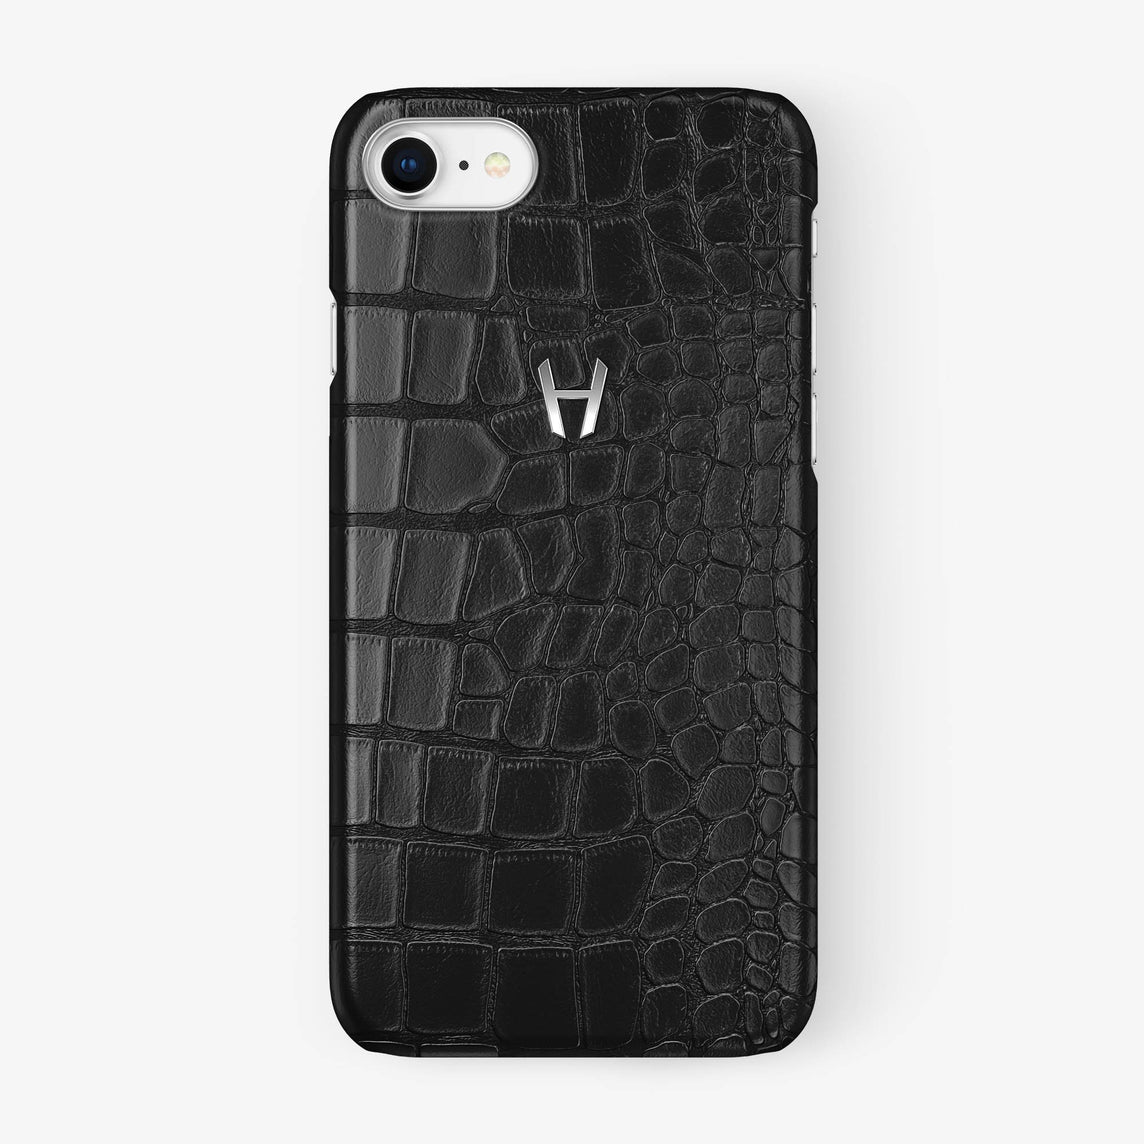 Alligator Case iPhone 7/8 | Black - Stainless Steel